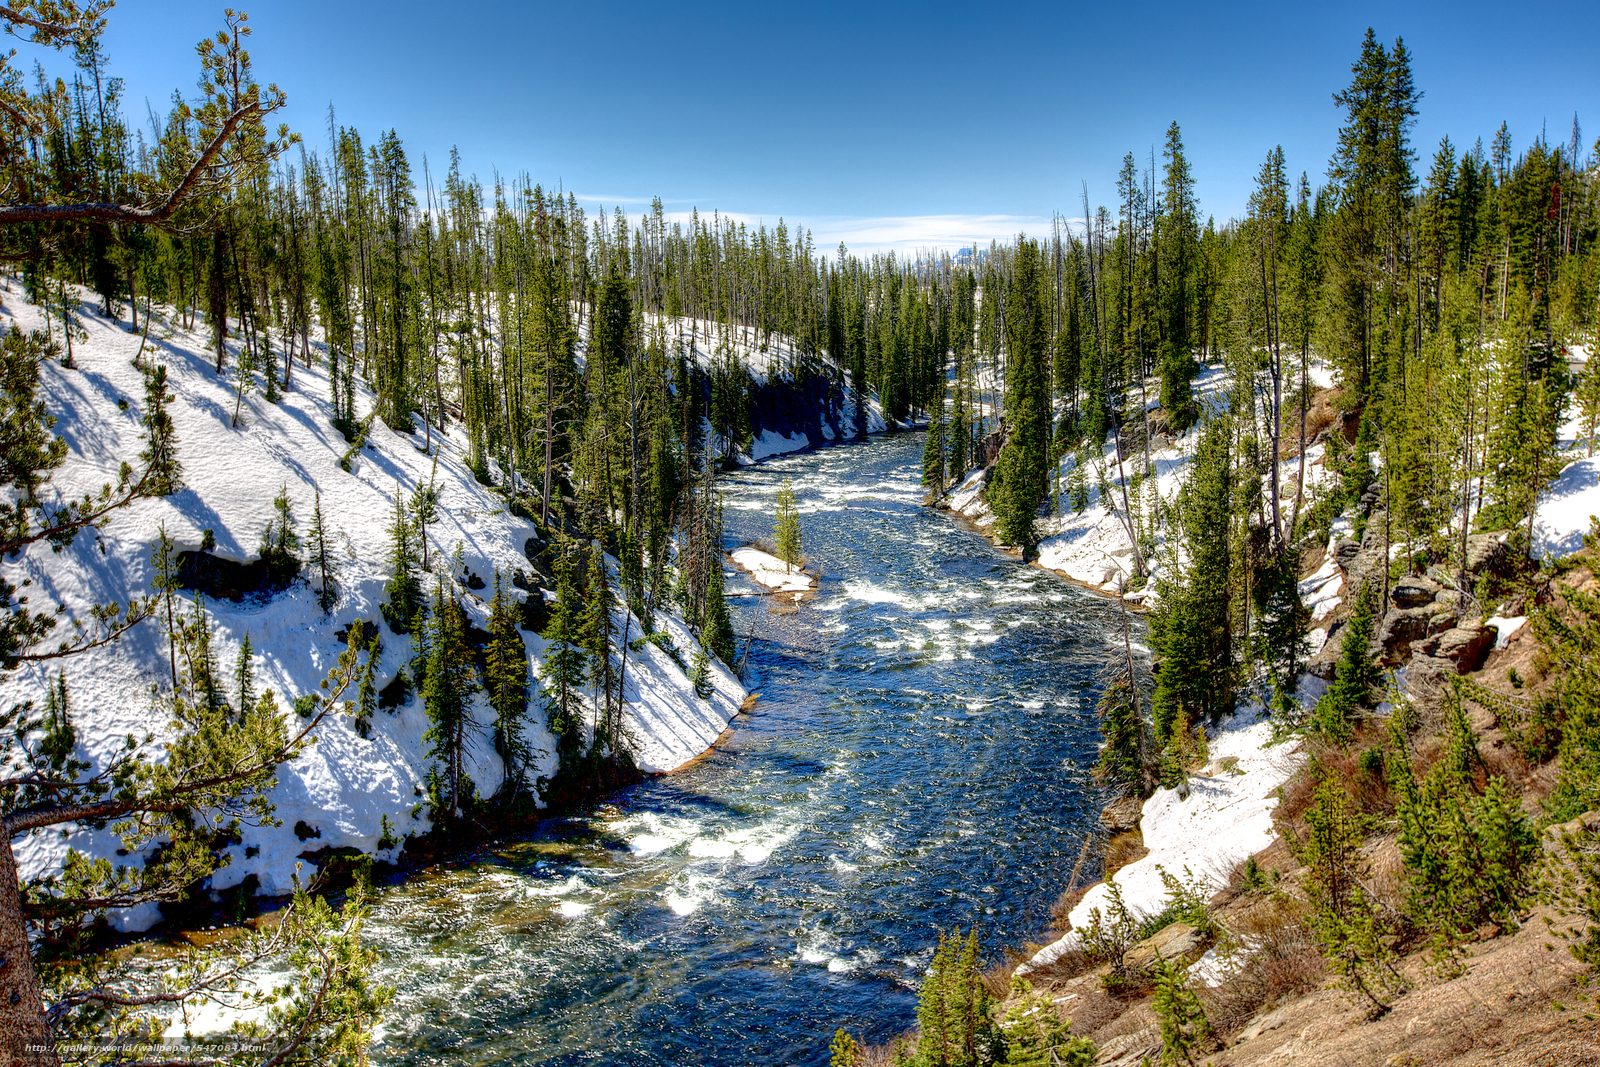 Download wallpaper Yellowstone National Park river trees landscape 1600x1067